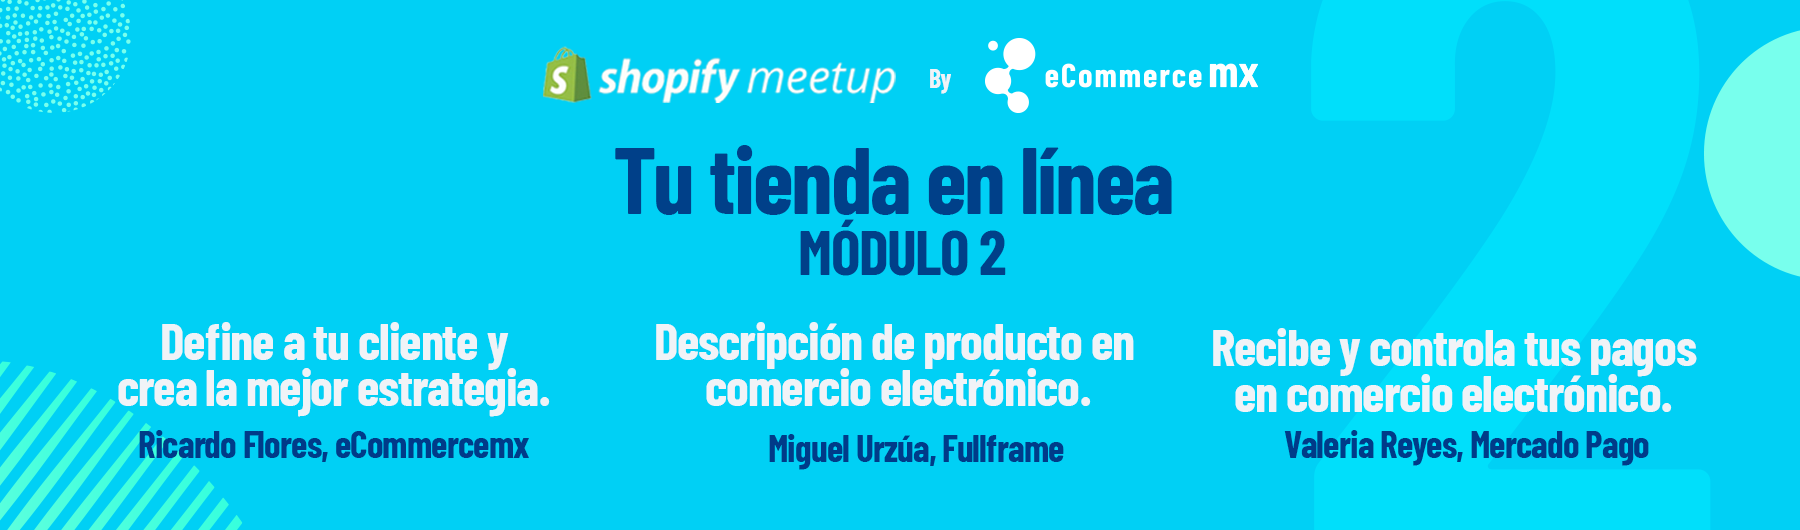 Shopify Meetup by eCommercemx